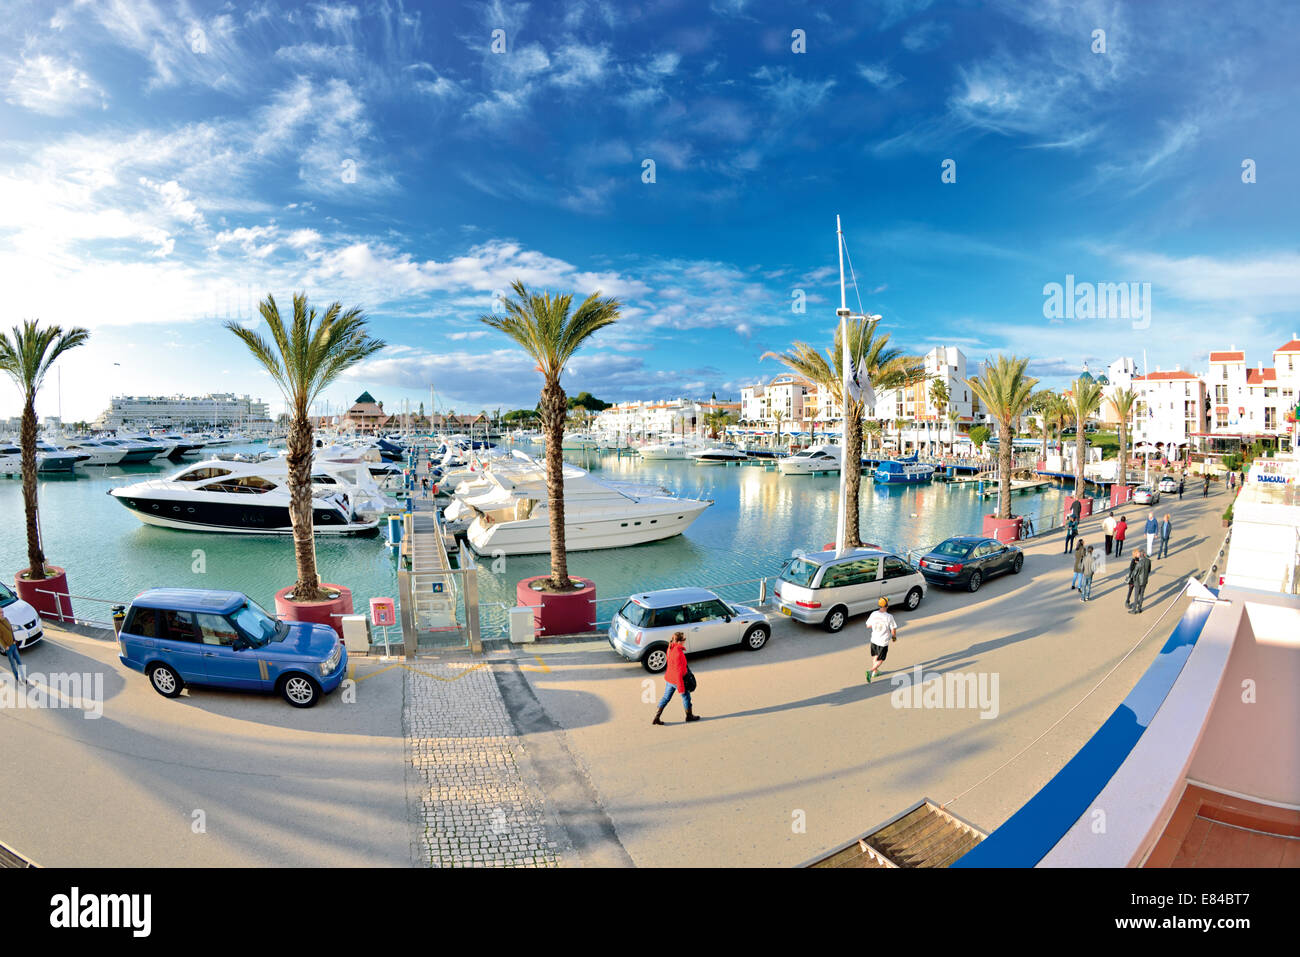 Portugal, Algarve: Fisheye perspective of the Marina de Vilamoura - Stock Image